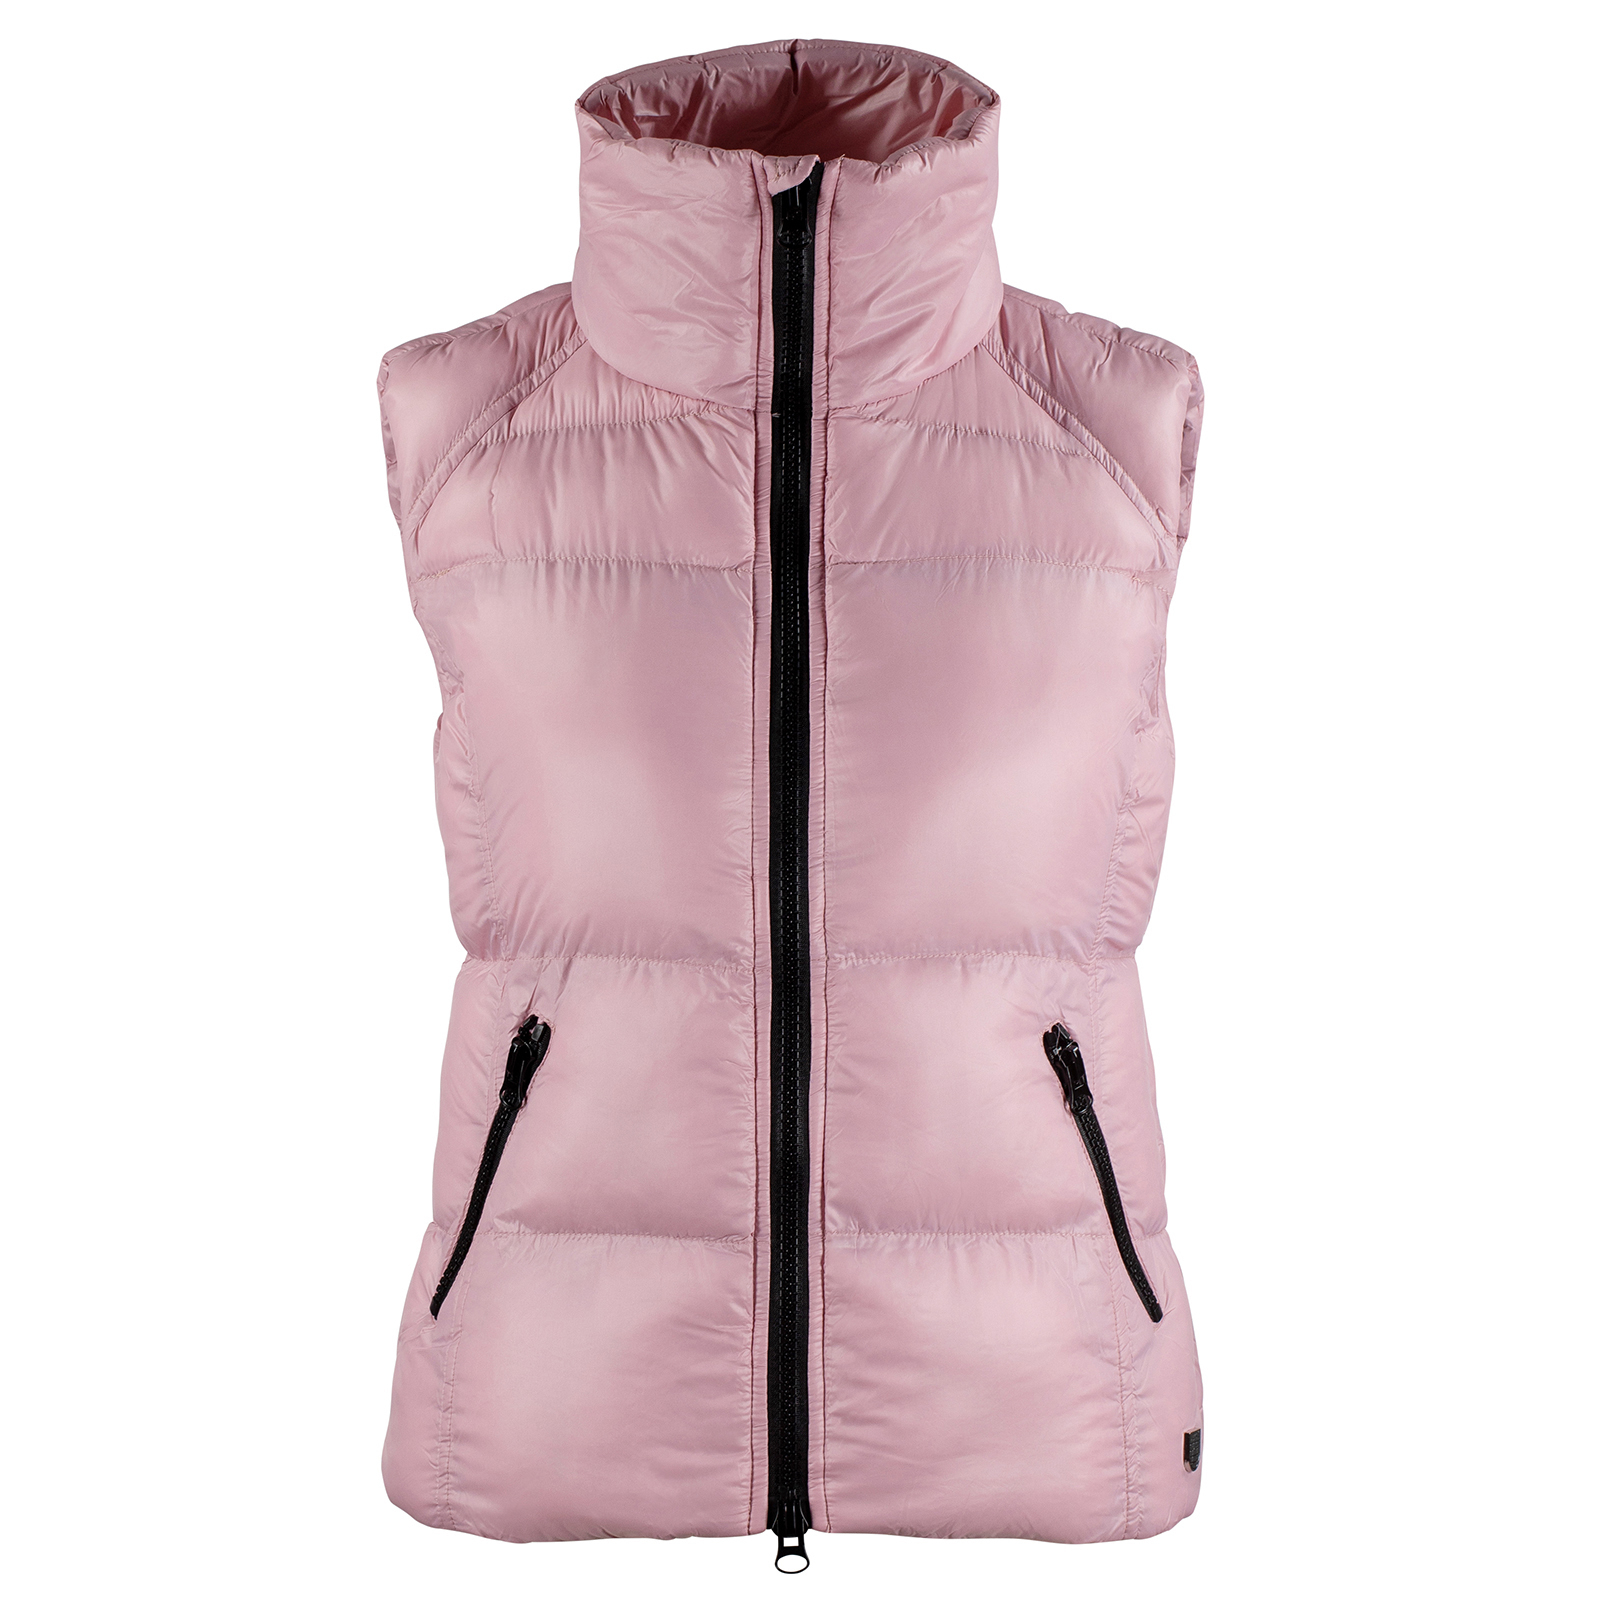 Buy affordable Women's Riding Gilets now | horze.co.uk